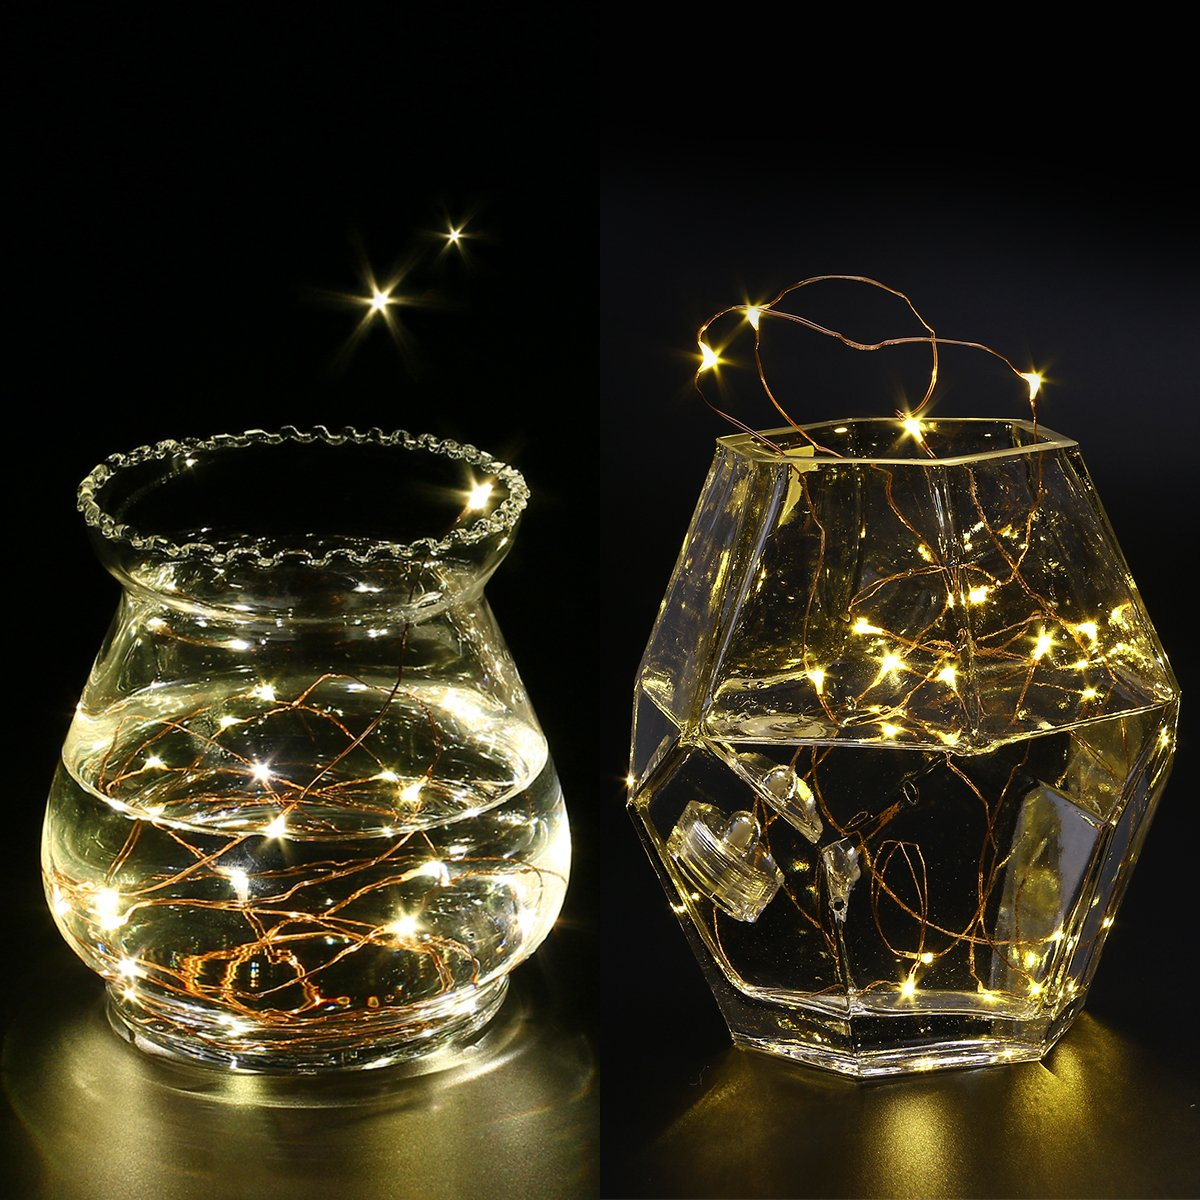 LED Starry String Lights, 8PCS 6.5foot Warm White Copper Fairy Lights with 20 Micro LEDs, Waterproof, Battery Operated, for Wedding Parties Table Decoration by YUNLIGHTS (Image #5)